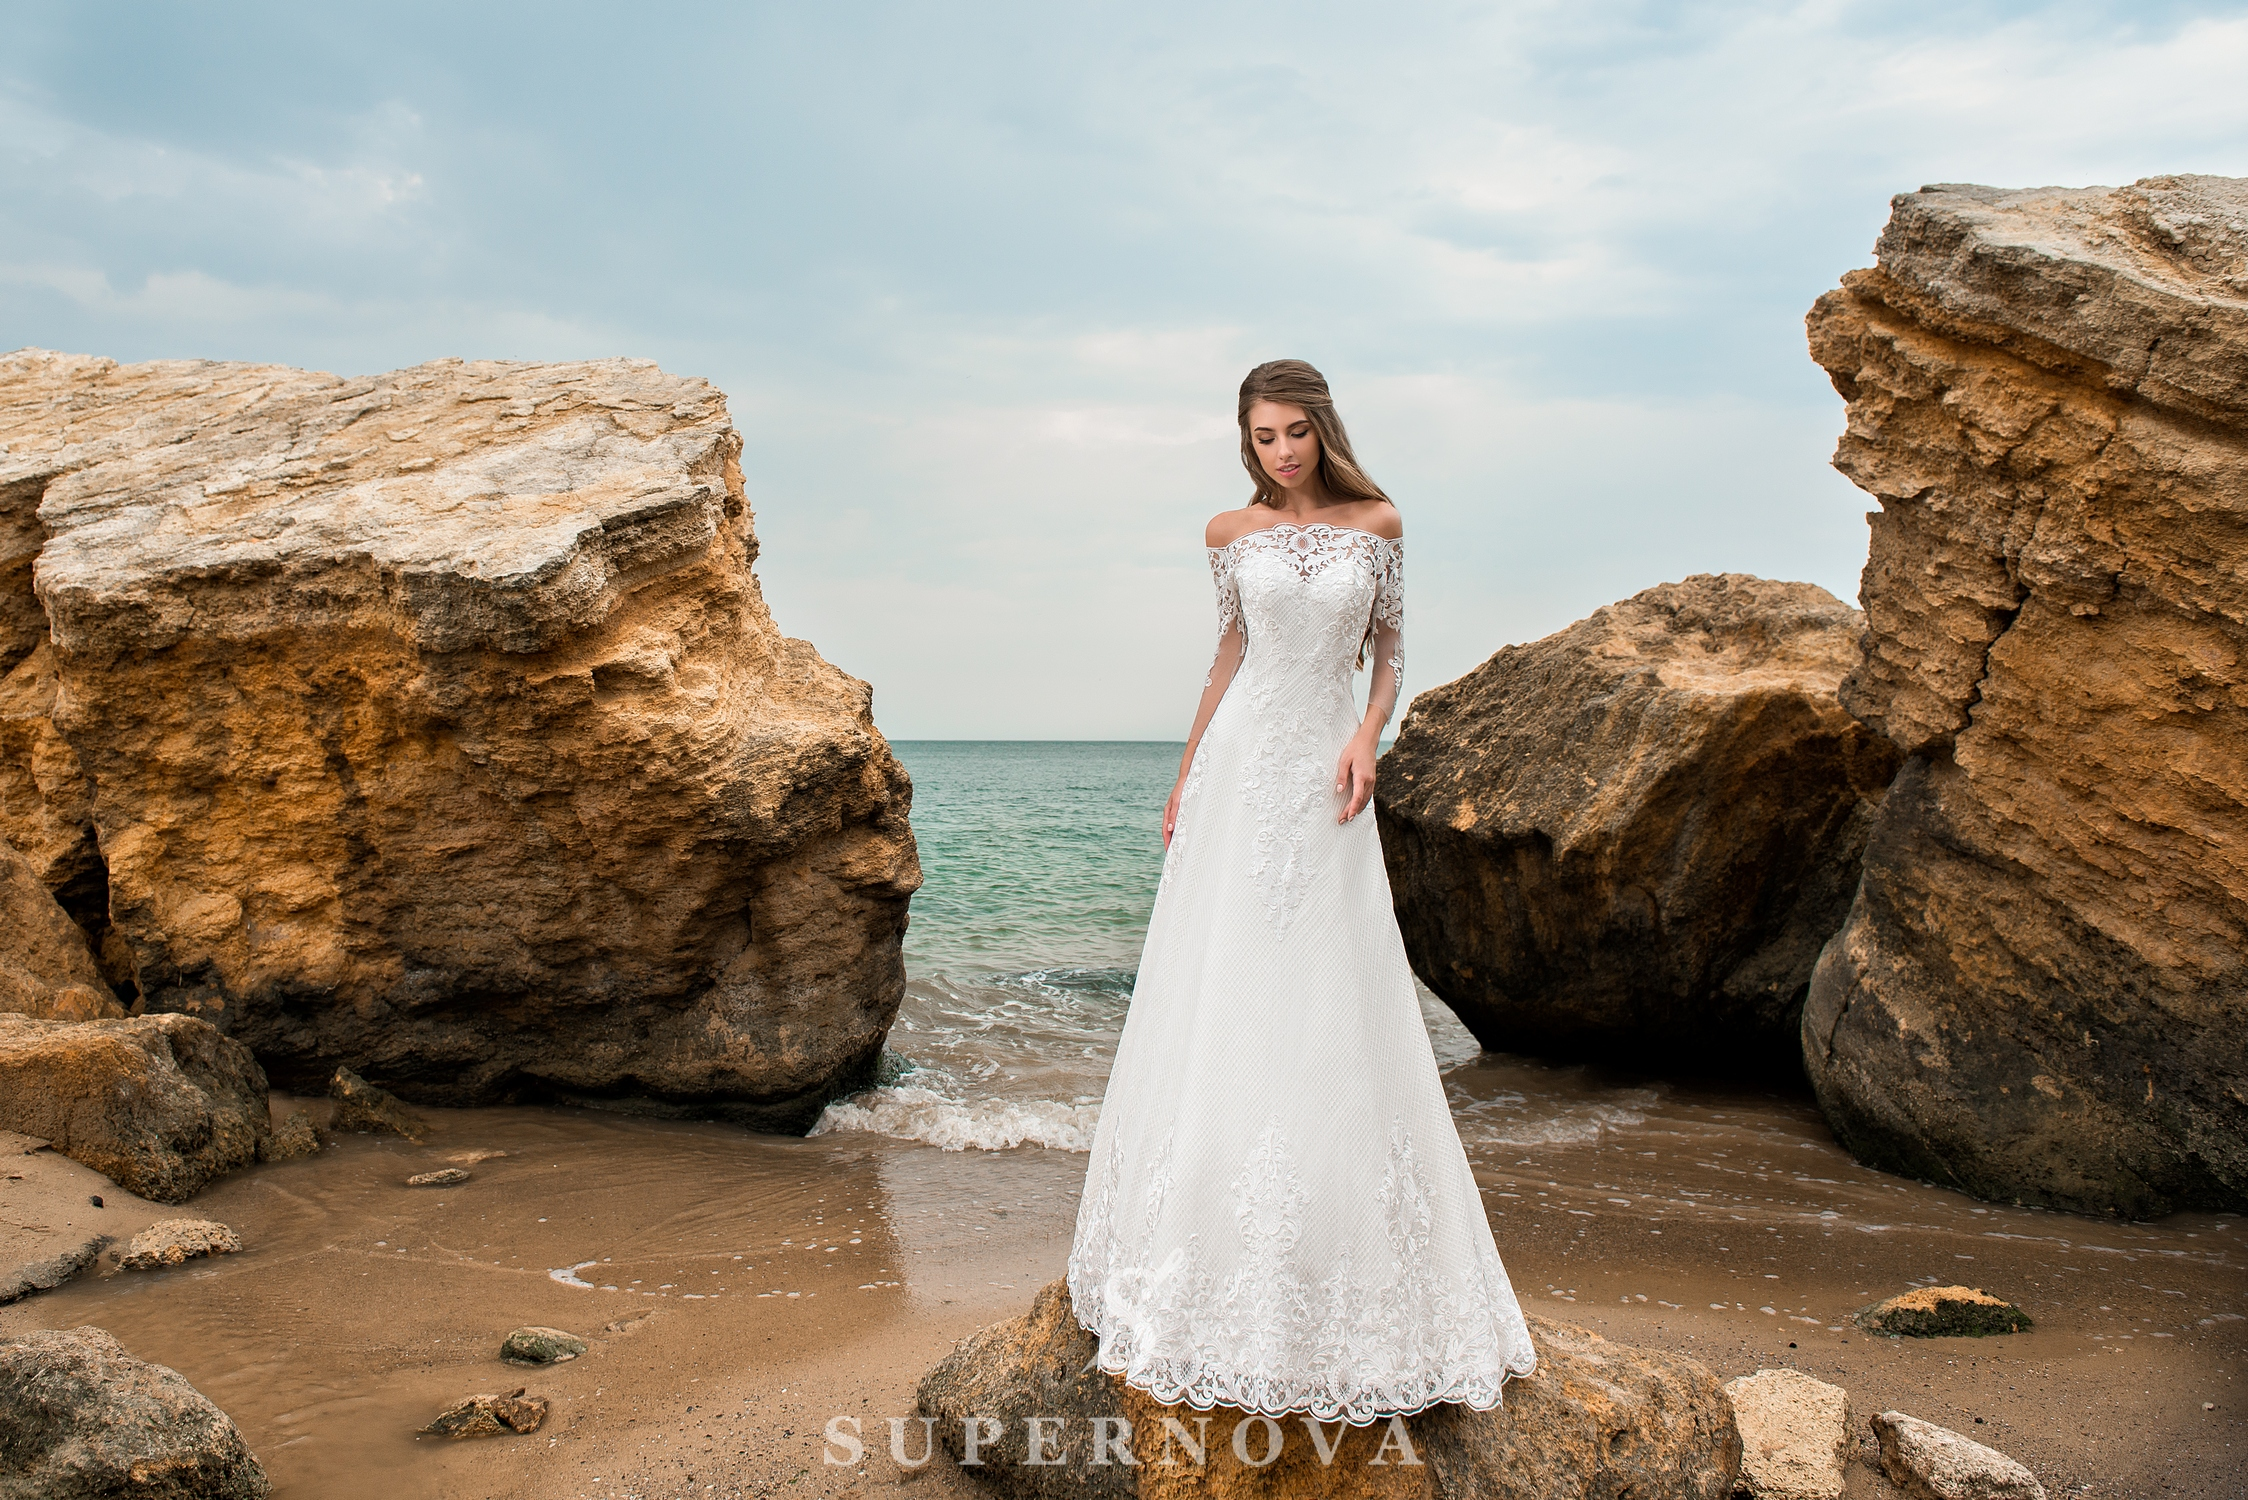 A-line silhouette wedding dress with a train-1